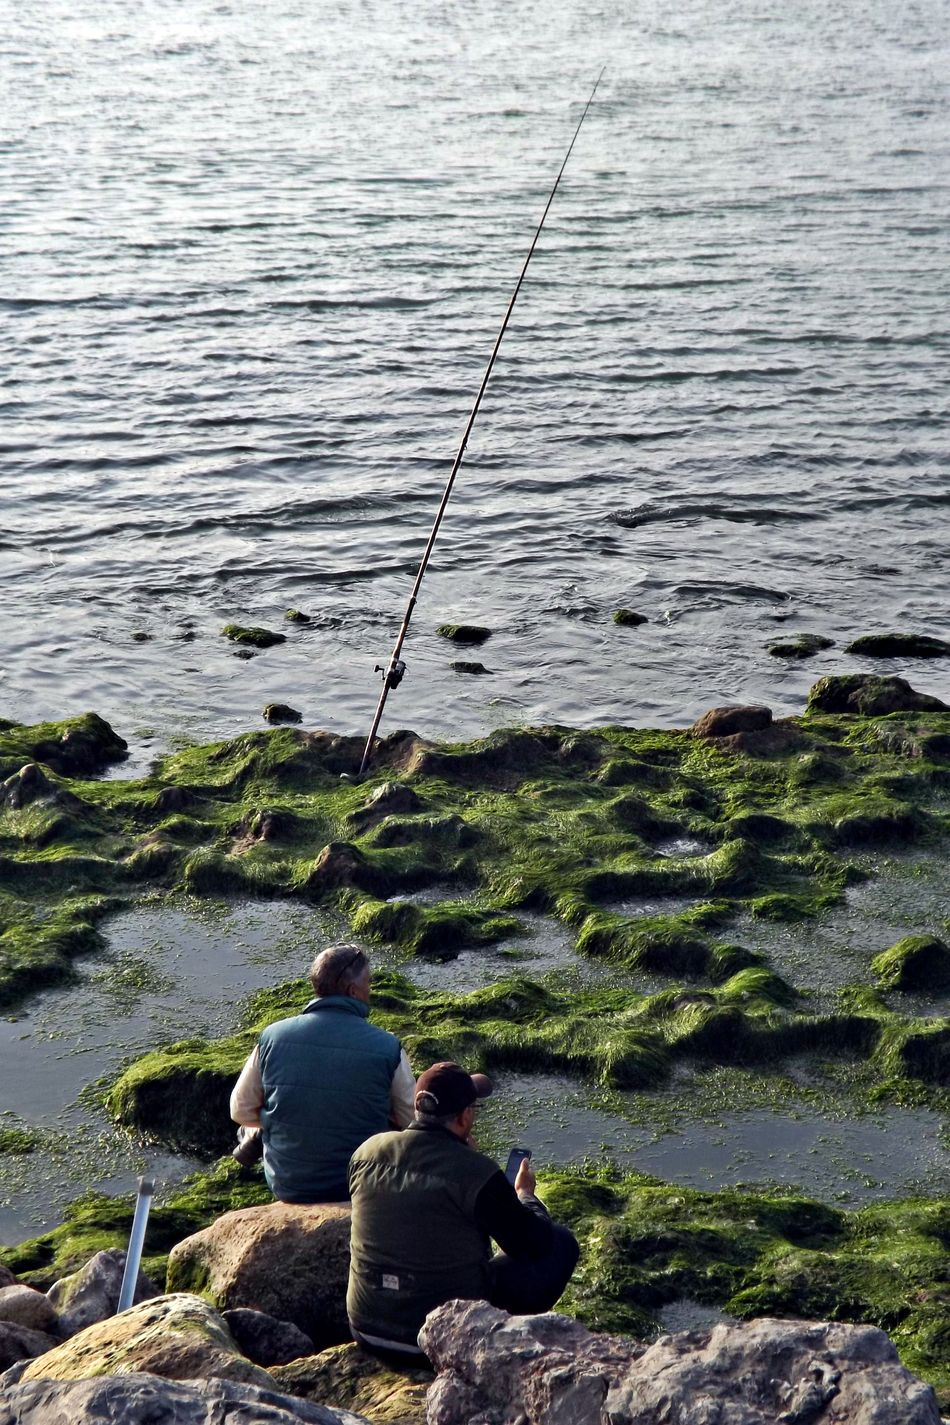 Beauty In Nature Day Fishing Fishing Equipment Fishing Pole Fishing Rod Fishing Tackle Full Length Horizon Over Water Leisure Activity Men Nature Outdoors People Real People Rippled Sea Sitting Standing Tranquil Scene Tranquility Two People Water Weekend Activities